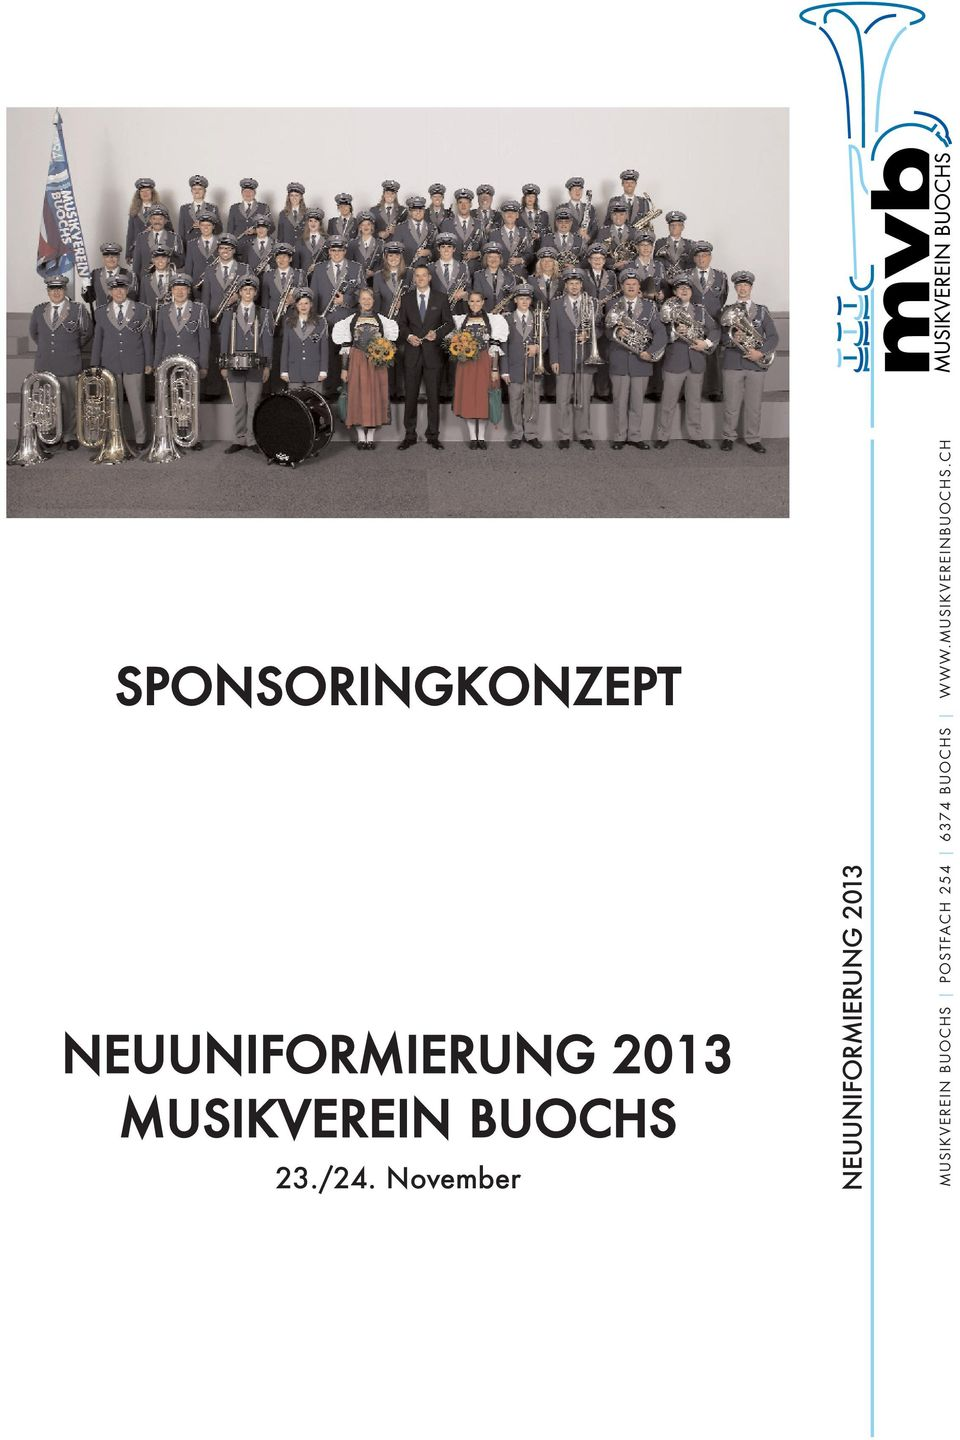 November MUSIKVEREIN BUOCHS